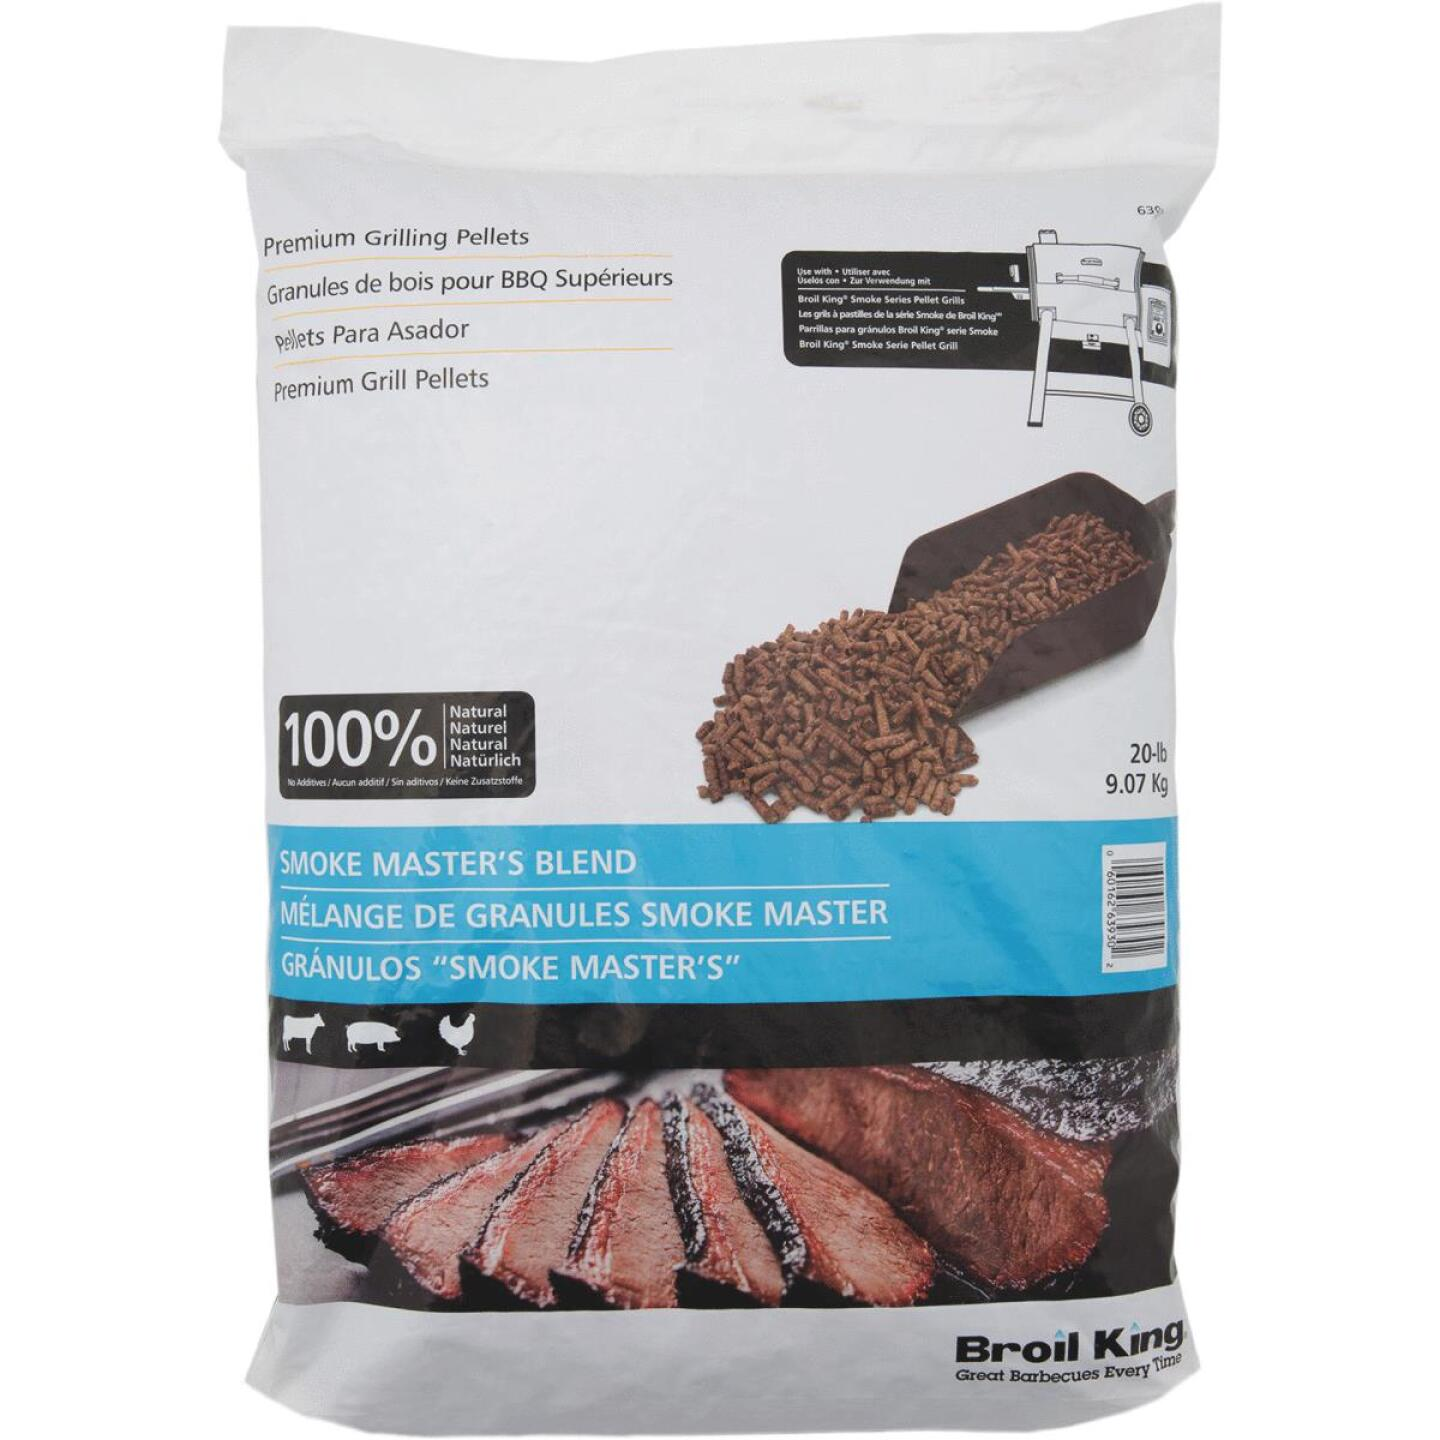 Broil King 20 Lb. Maple, Hickory, & Cherry Smoke Master's Blend Wood Pellet Image 1